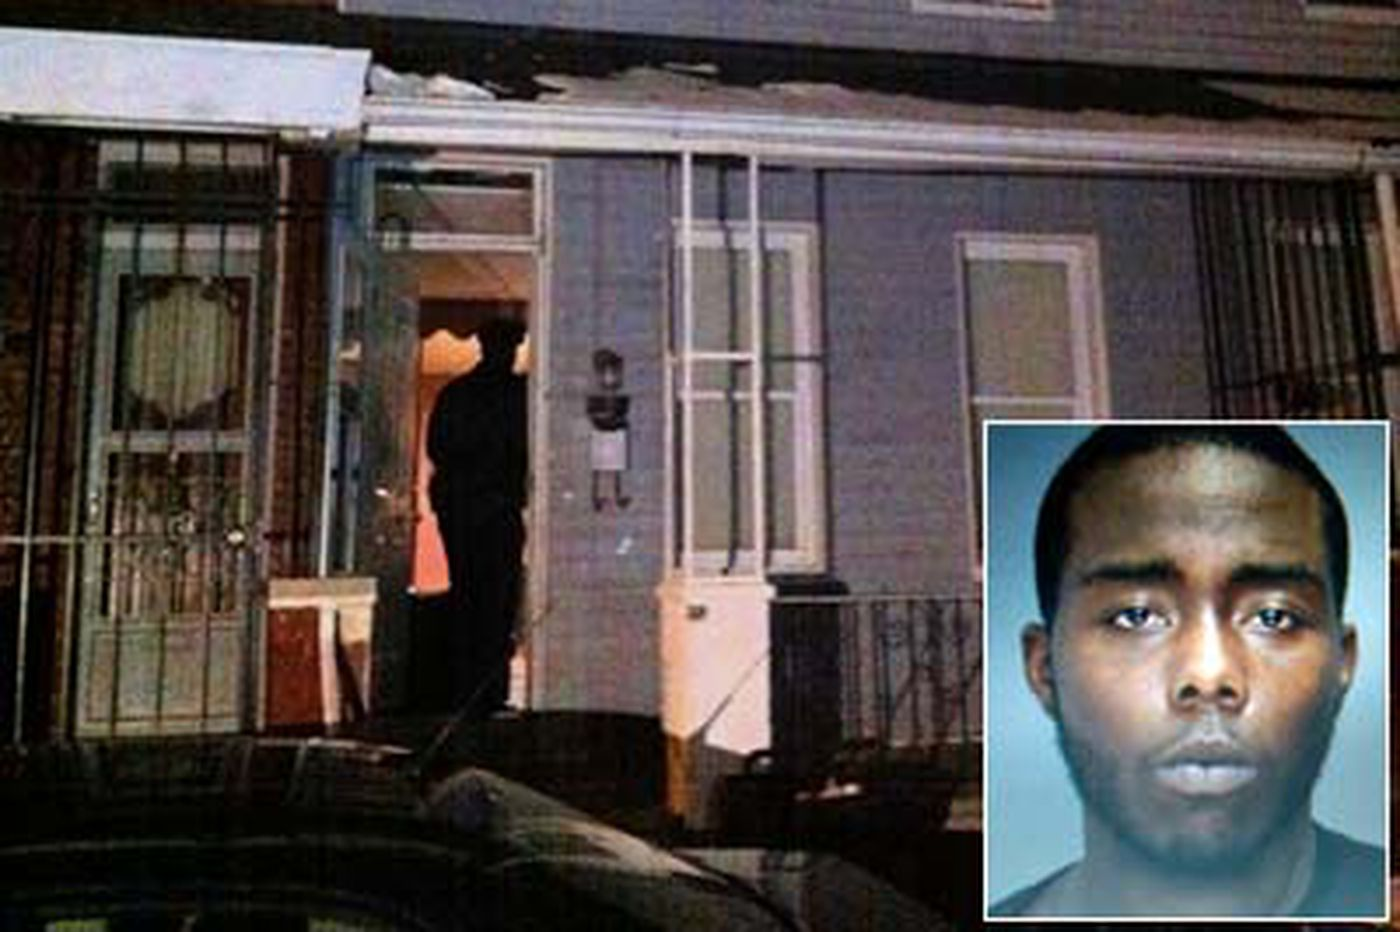 Confessed Kensington strangler: Quiet, calm, from a seemingly stable upbringing